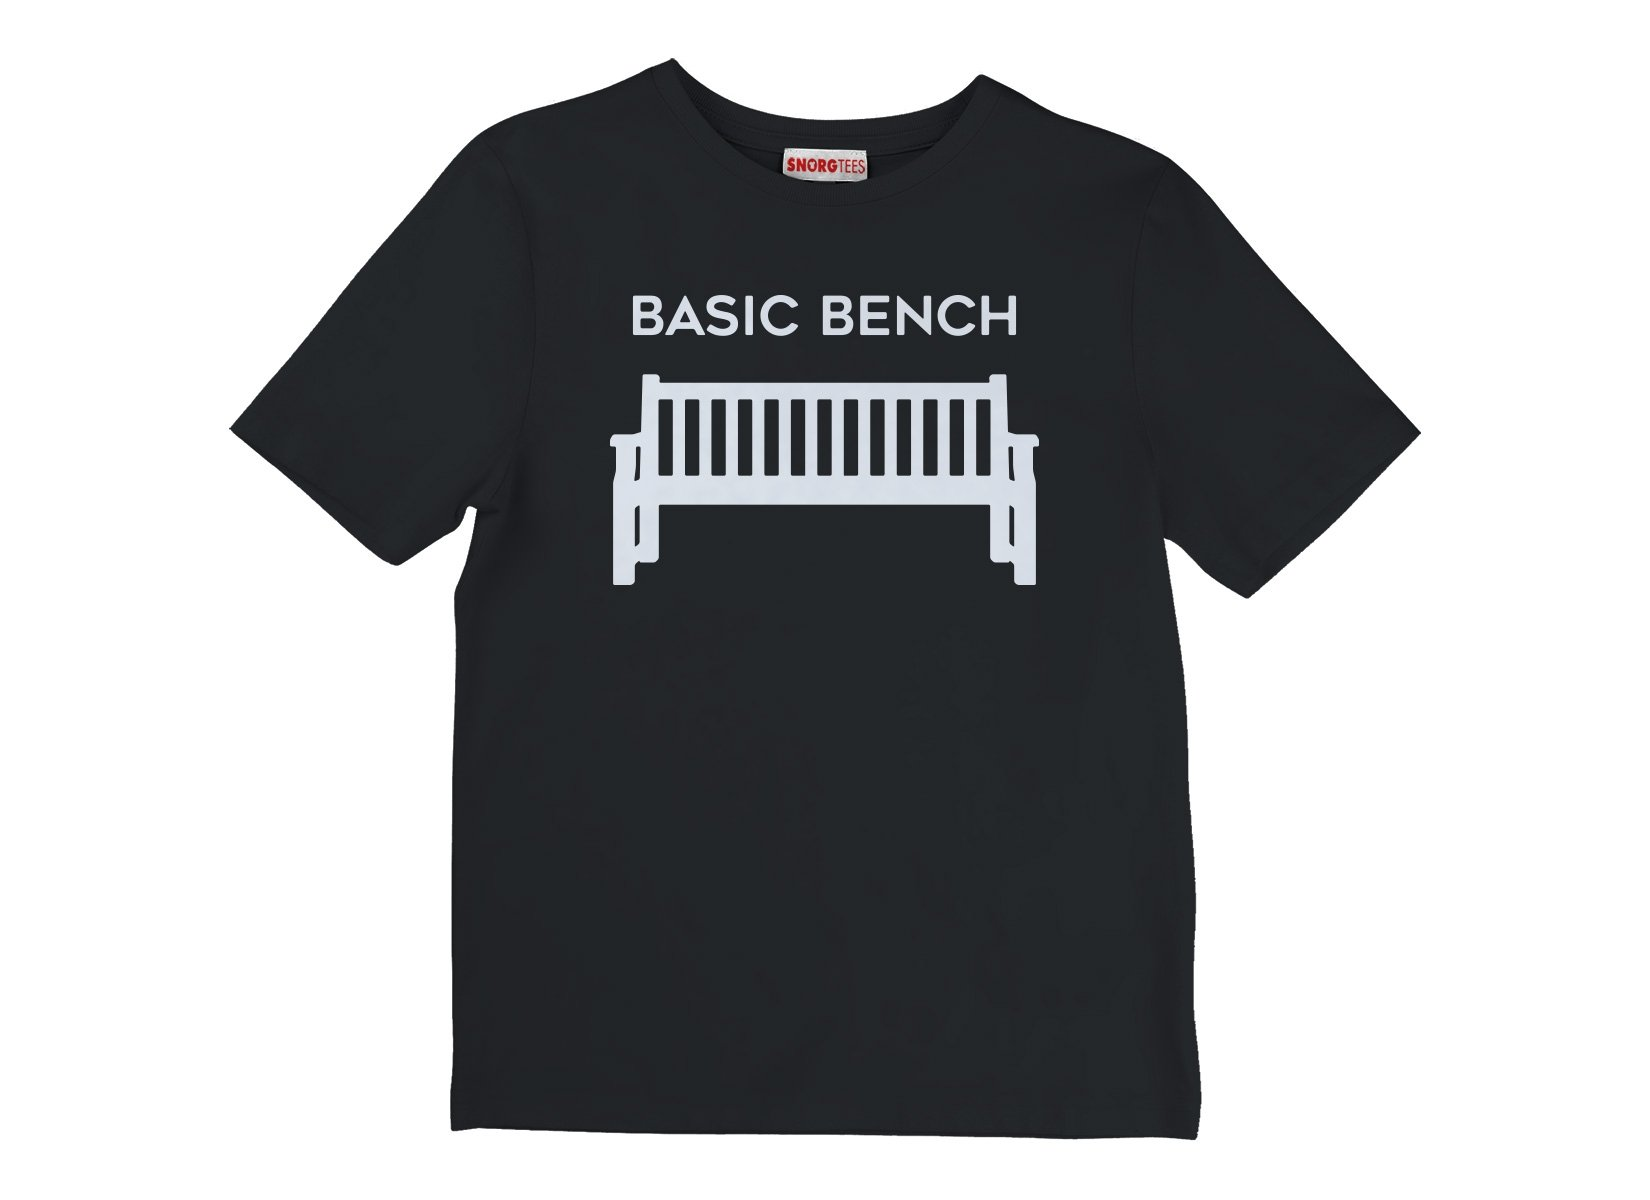 Basic Bench on Kids T-Shirt